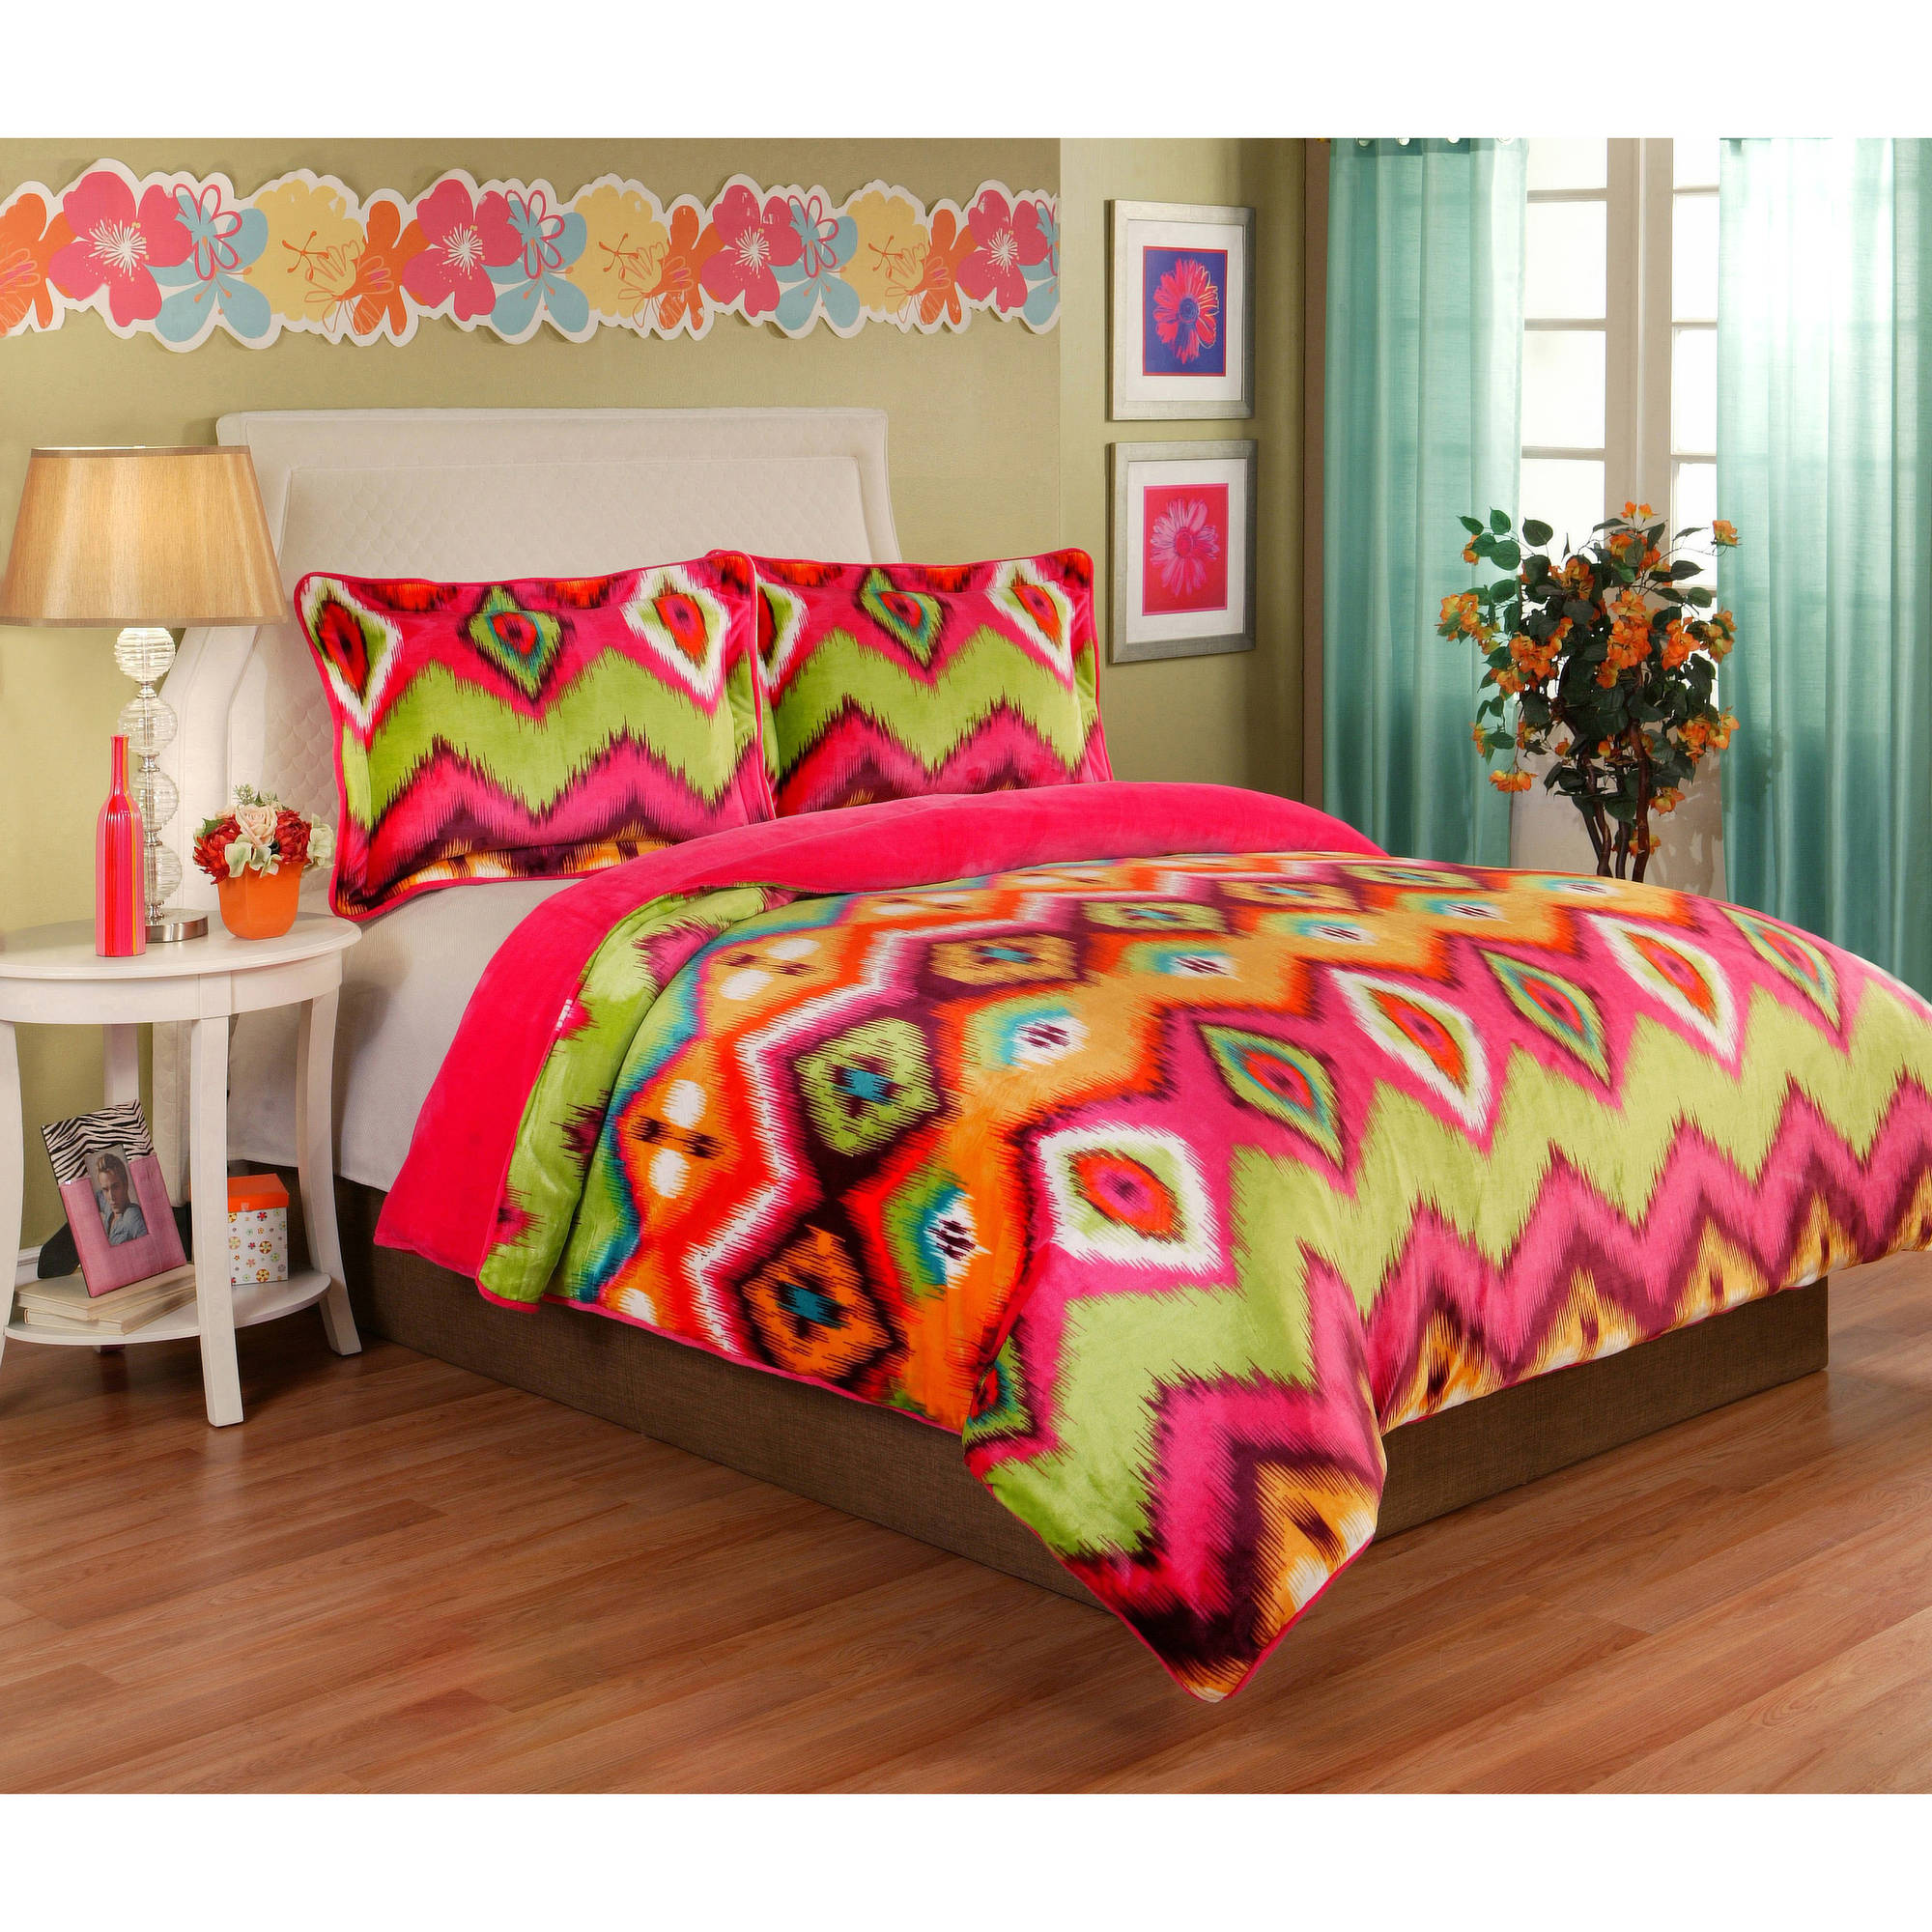 Gypsy Velvet Plush Print Bedding Comforter Mini Set by Sun Yin